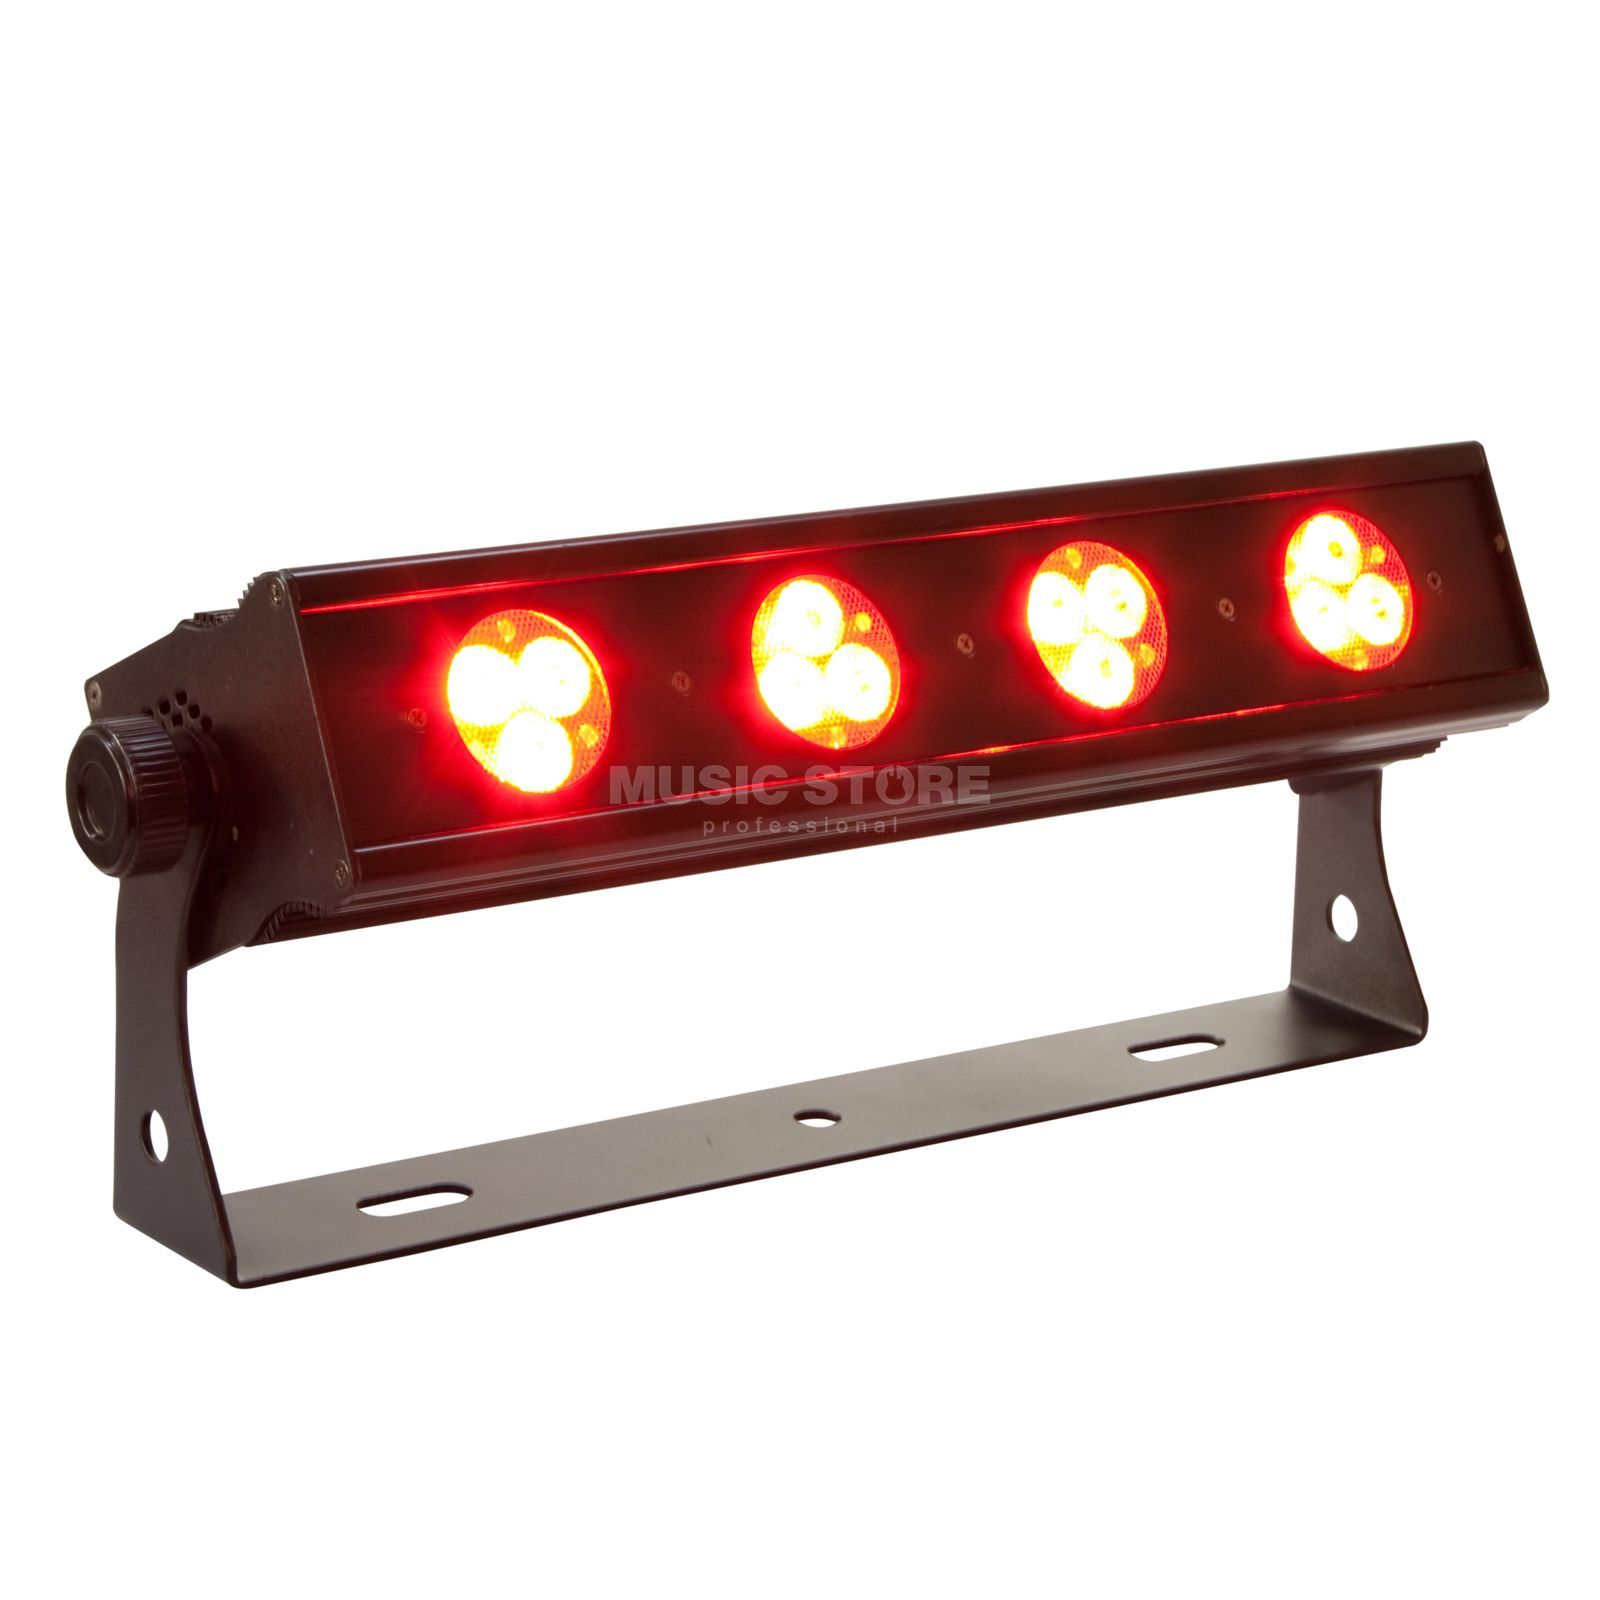 lightmaXX Platinum BAR TRI-LED short 12x 3W TRI-LED, black Produktbild